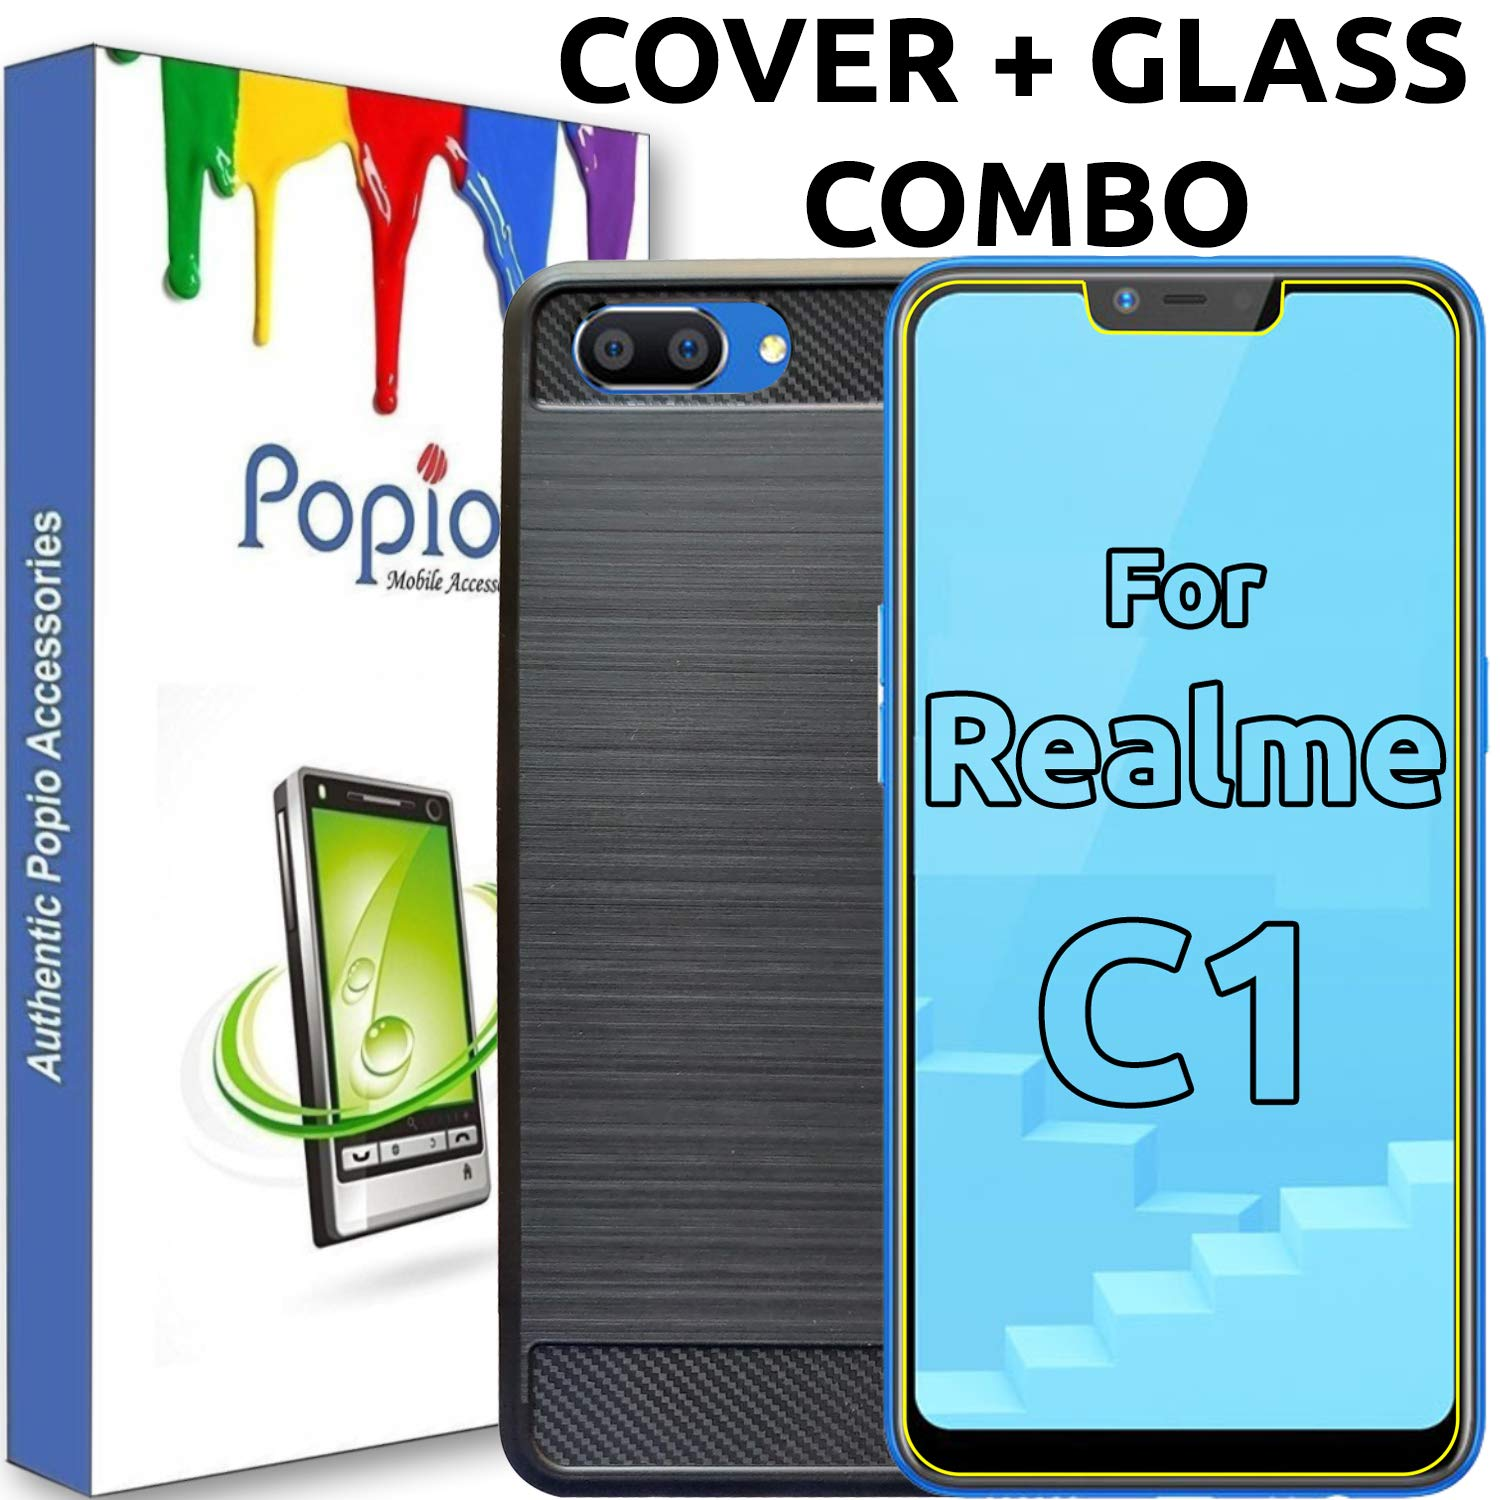 cfd639aaa4a Oppo Realme C1 Back Cover Case   Tempered Glass  Amazon.in  Electronics